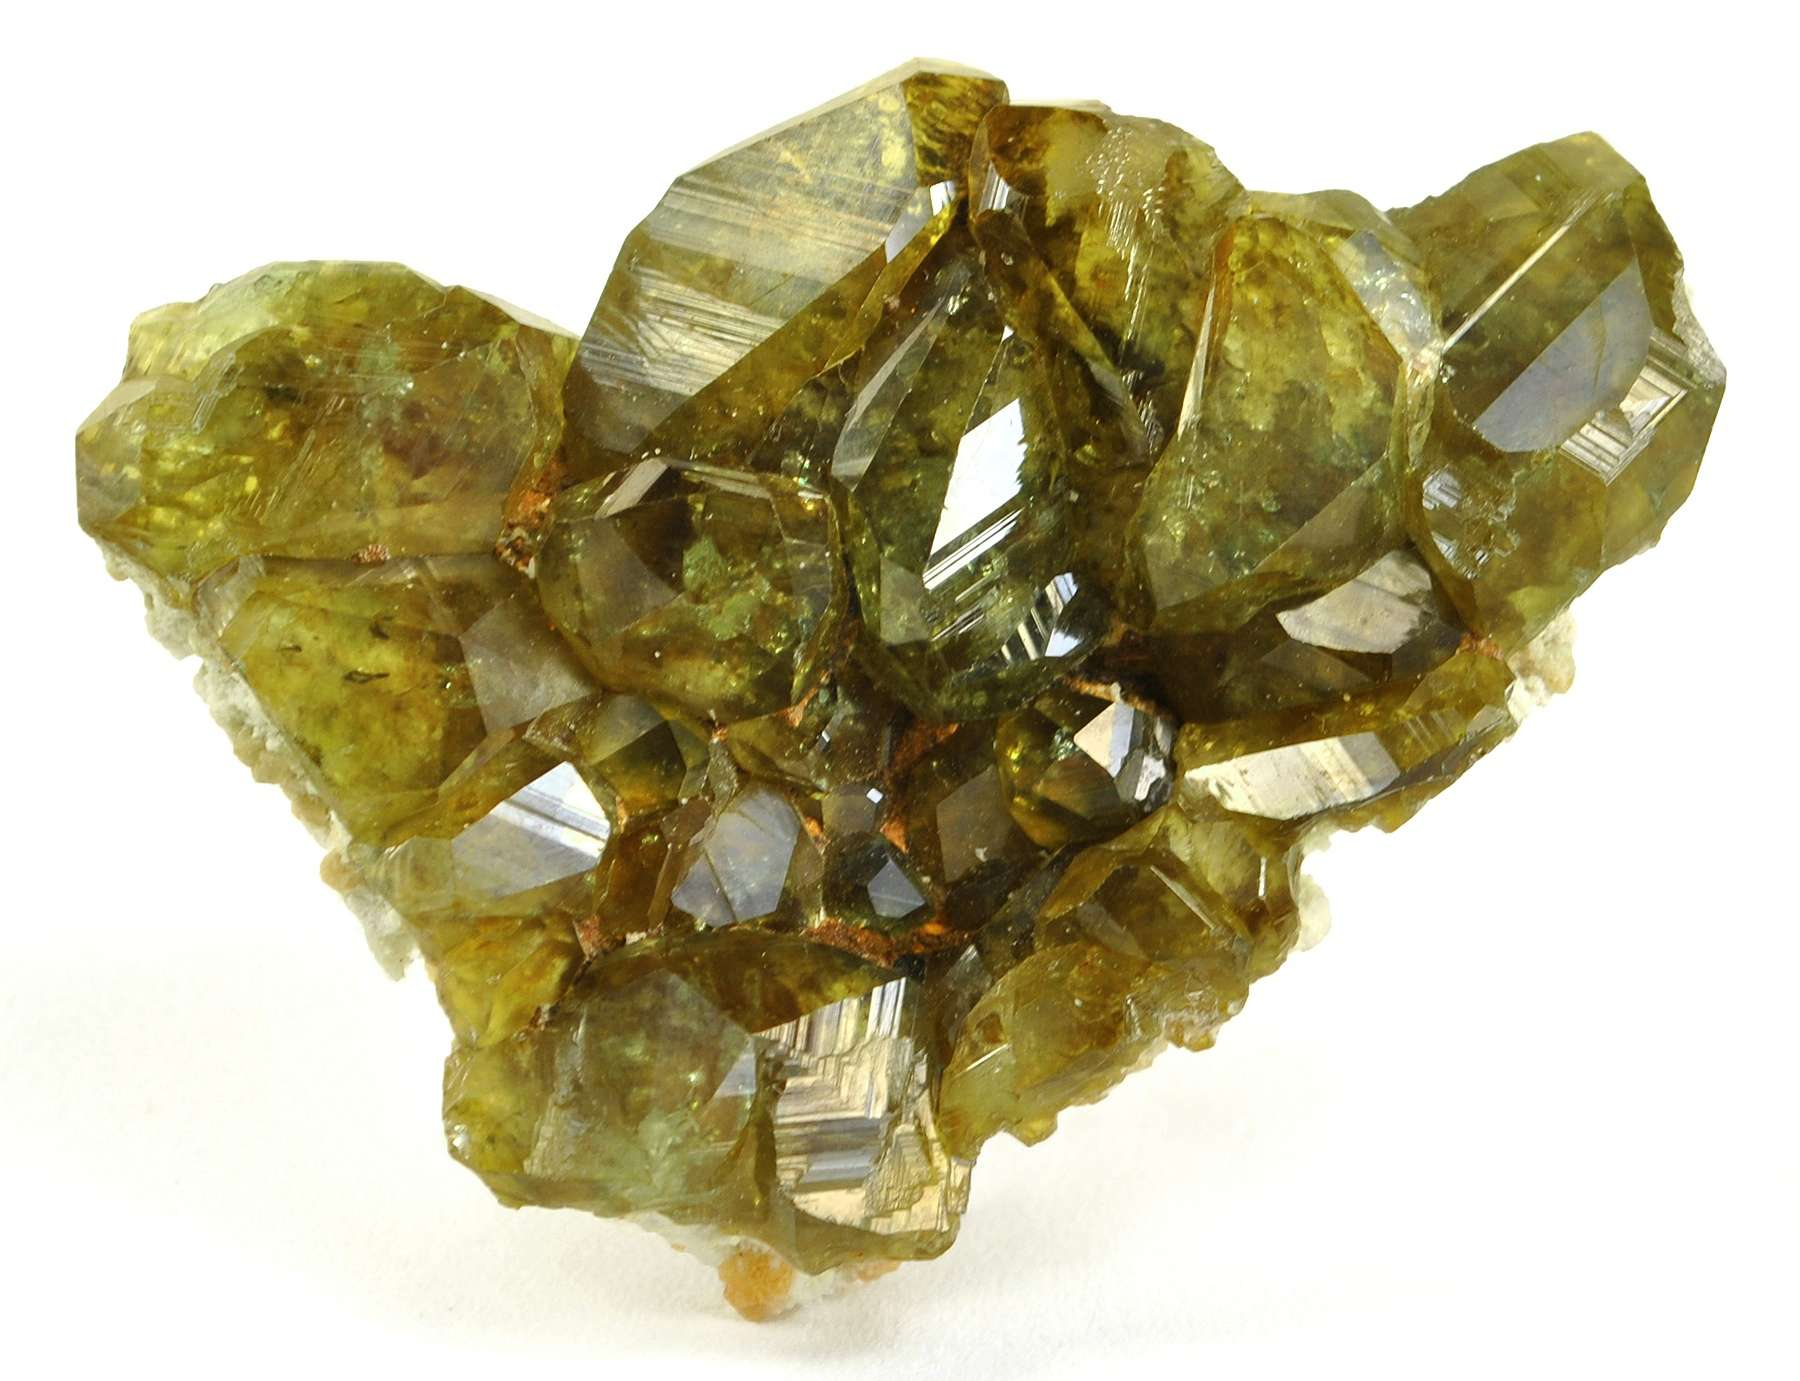 Intergrown crystals glassy gemmy olive green colored demantoid